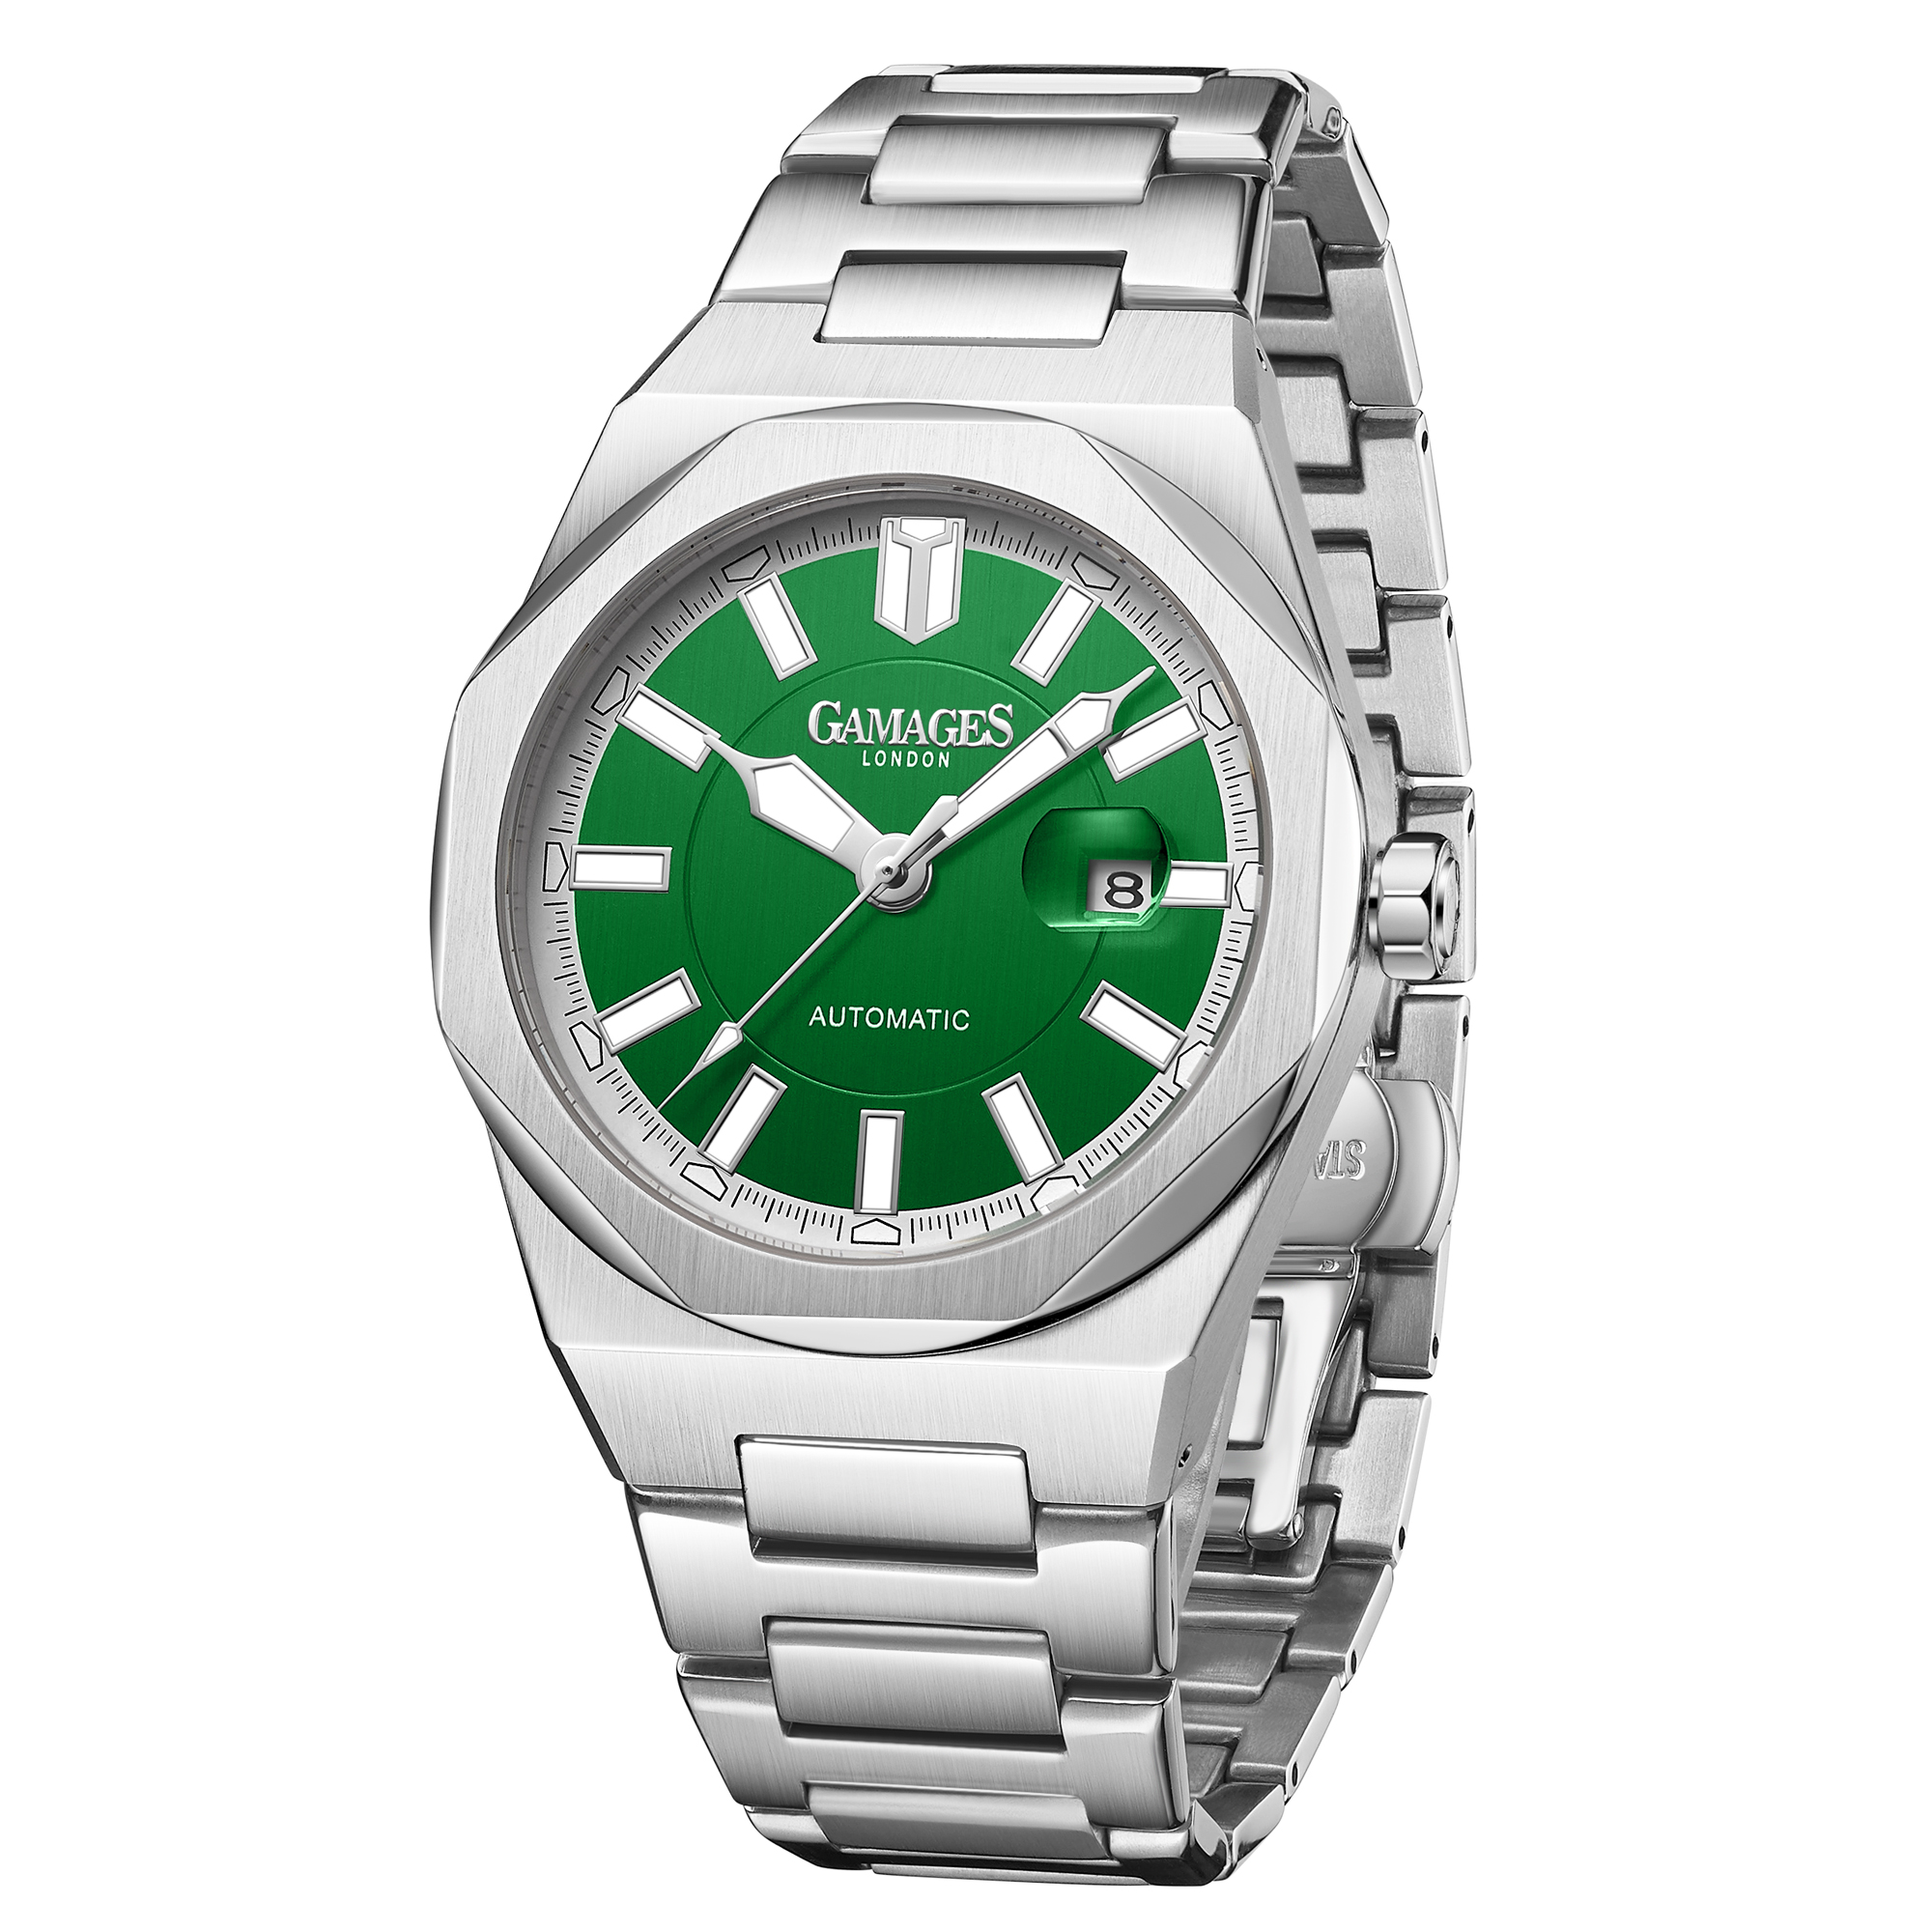 Ltd Edition Hand Assembled Gamages Quintessential Automatic Green – 5 Year Warranty & Free Delivery - Image 4 of 5